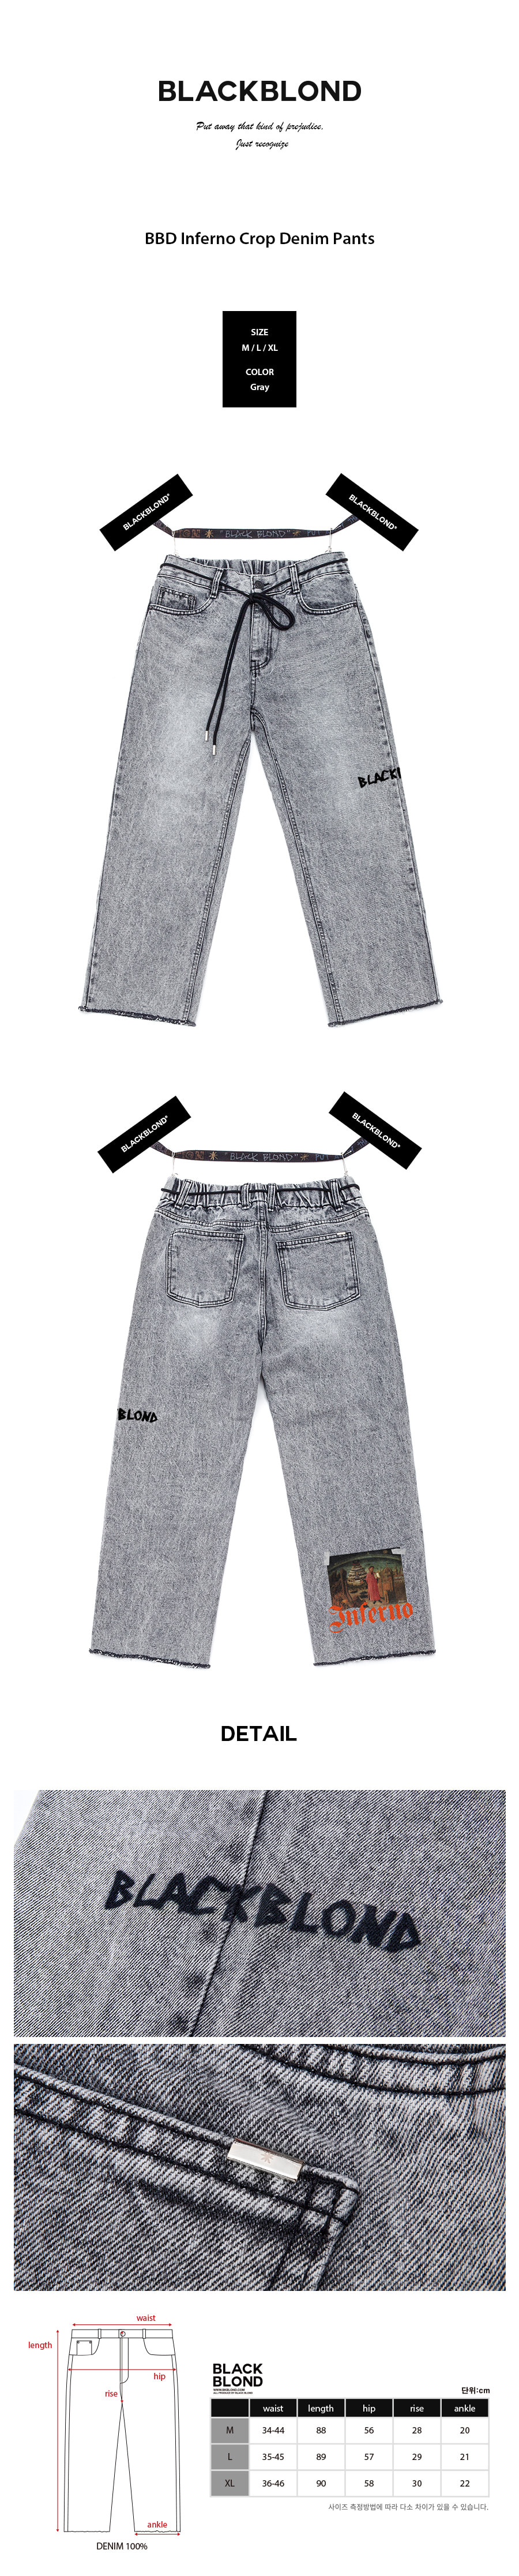 BLACKBLOND - BBD Inferno Crop Denim Pants (Gray)